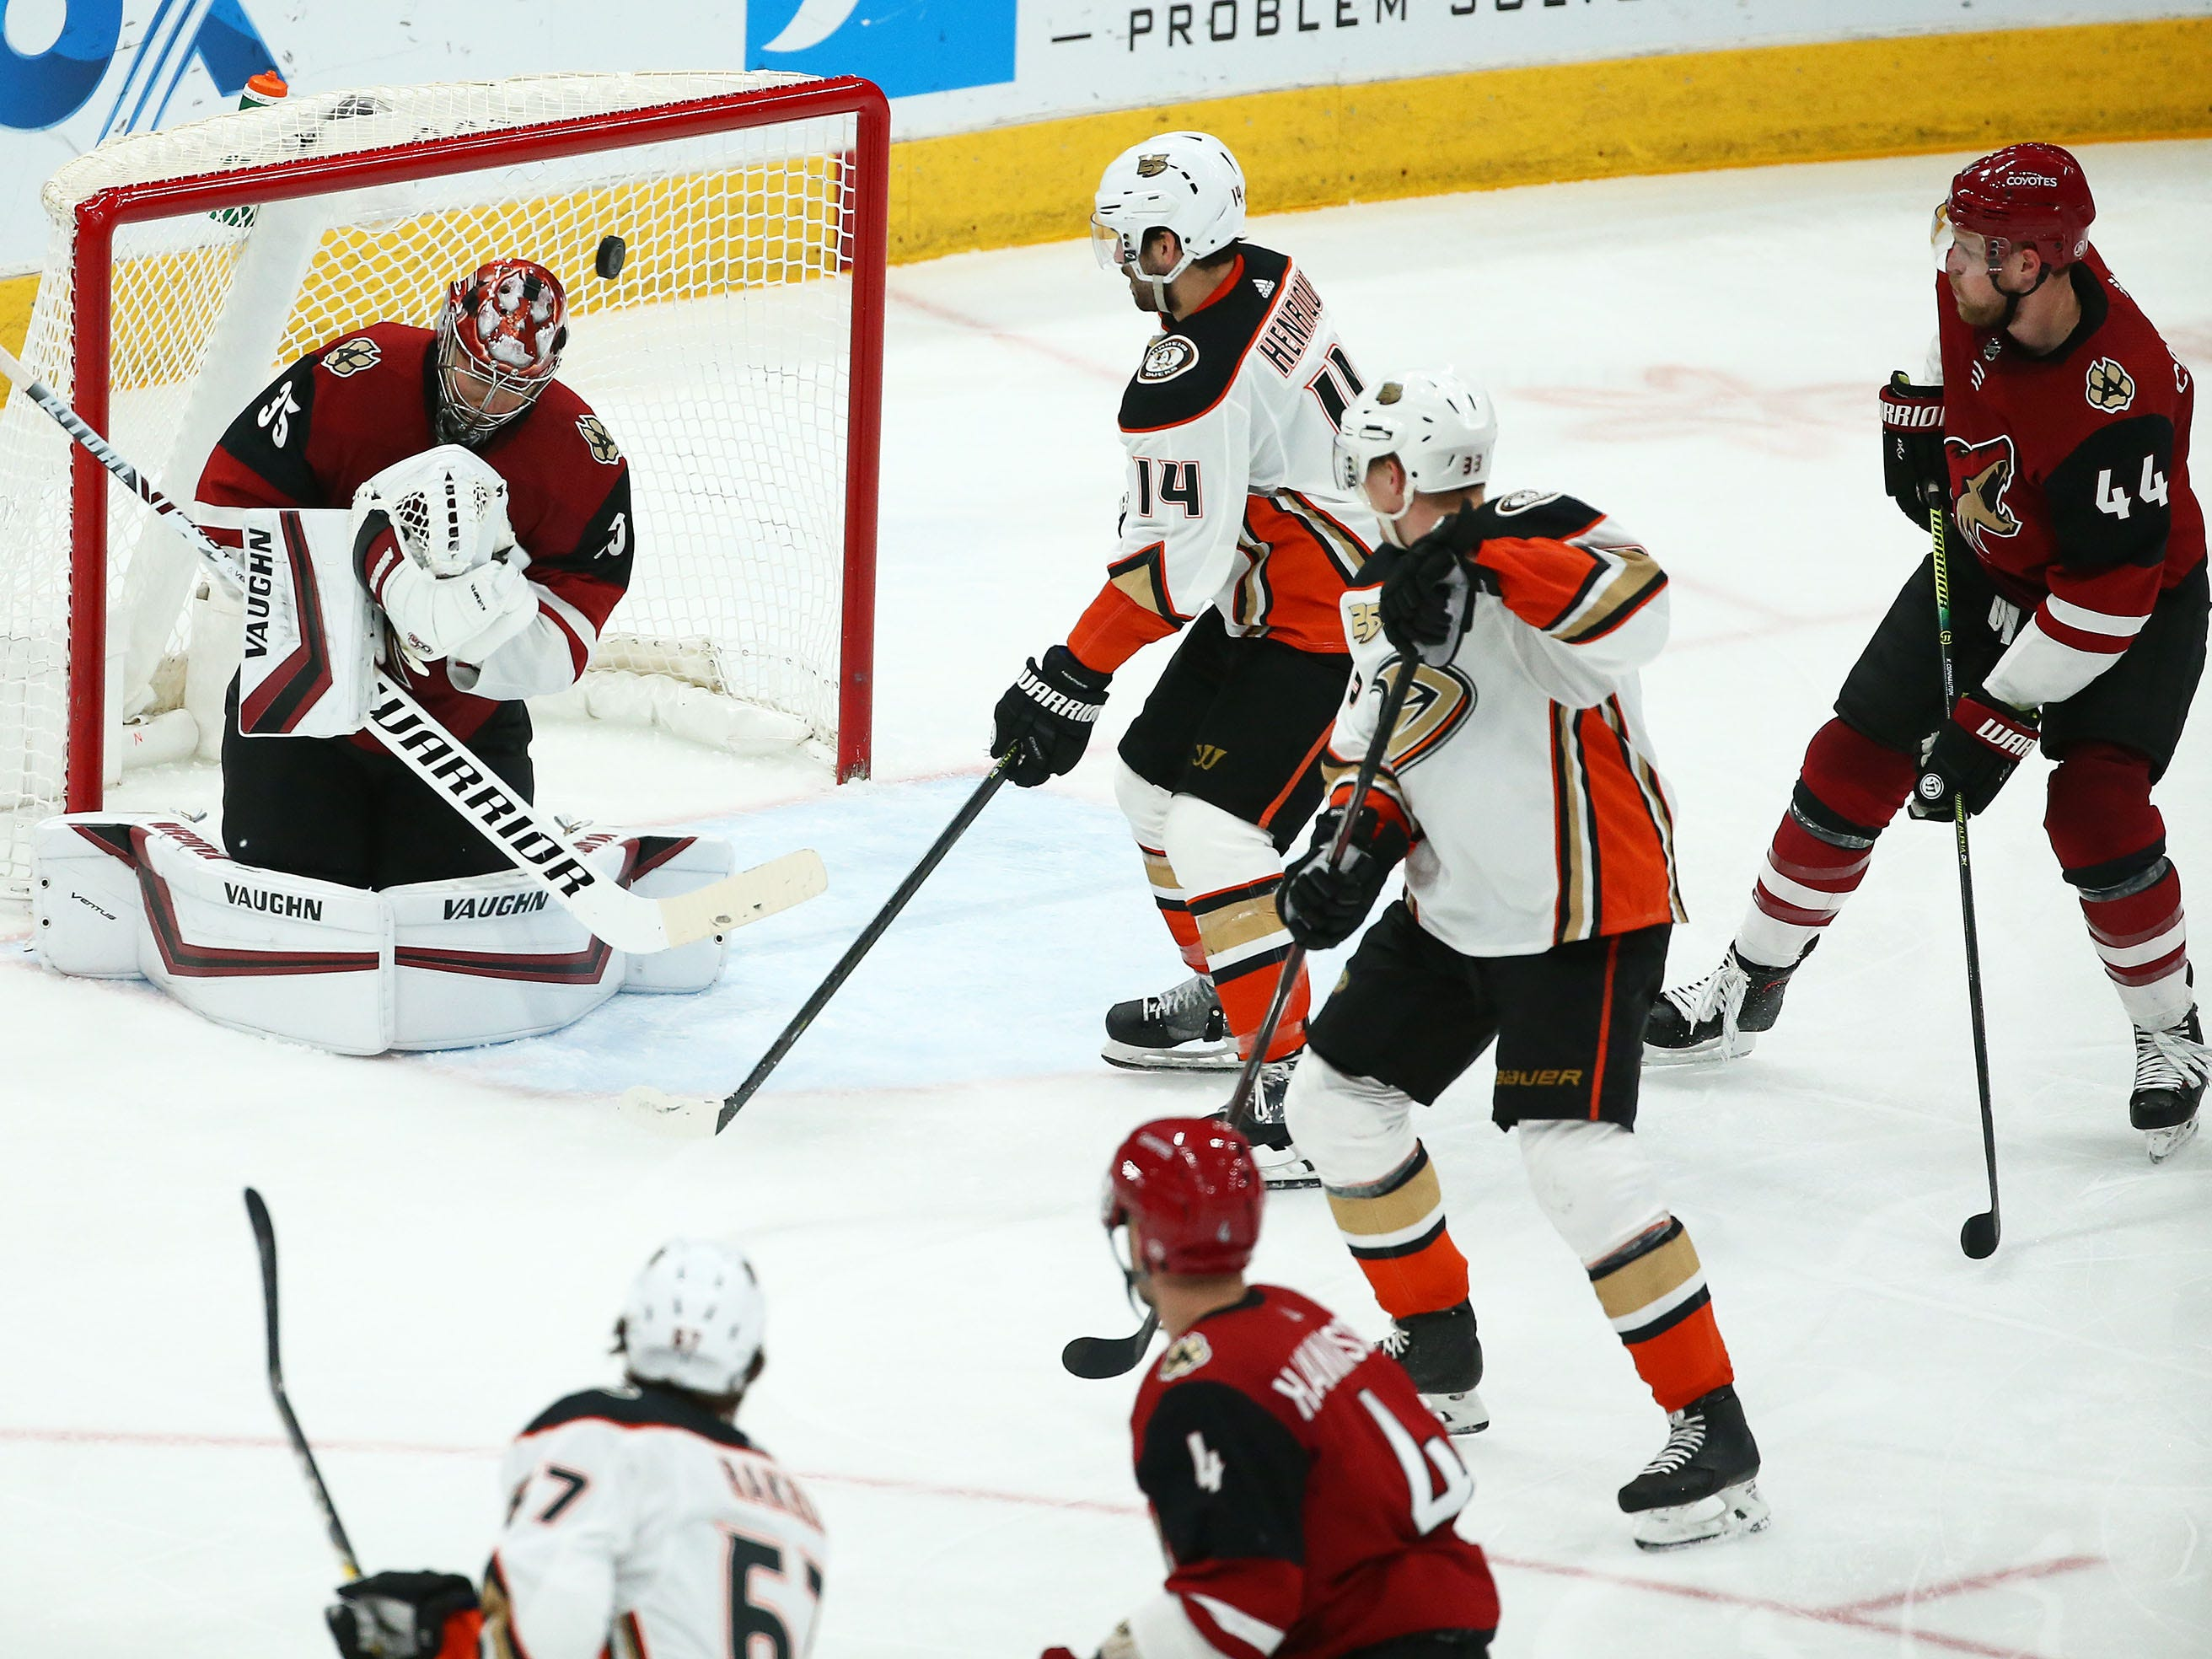 Anaheim Ducks center Adam Henrique (14) scores a goal against Arizona Coyotes goaltender Darcy Kuemper (35) in the third period on Mar. 5, 2019, at Gila River Arena in Glendale, Ariz.